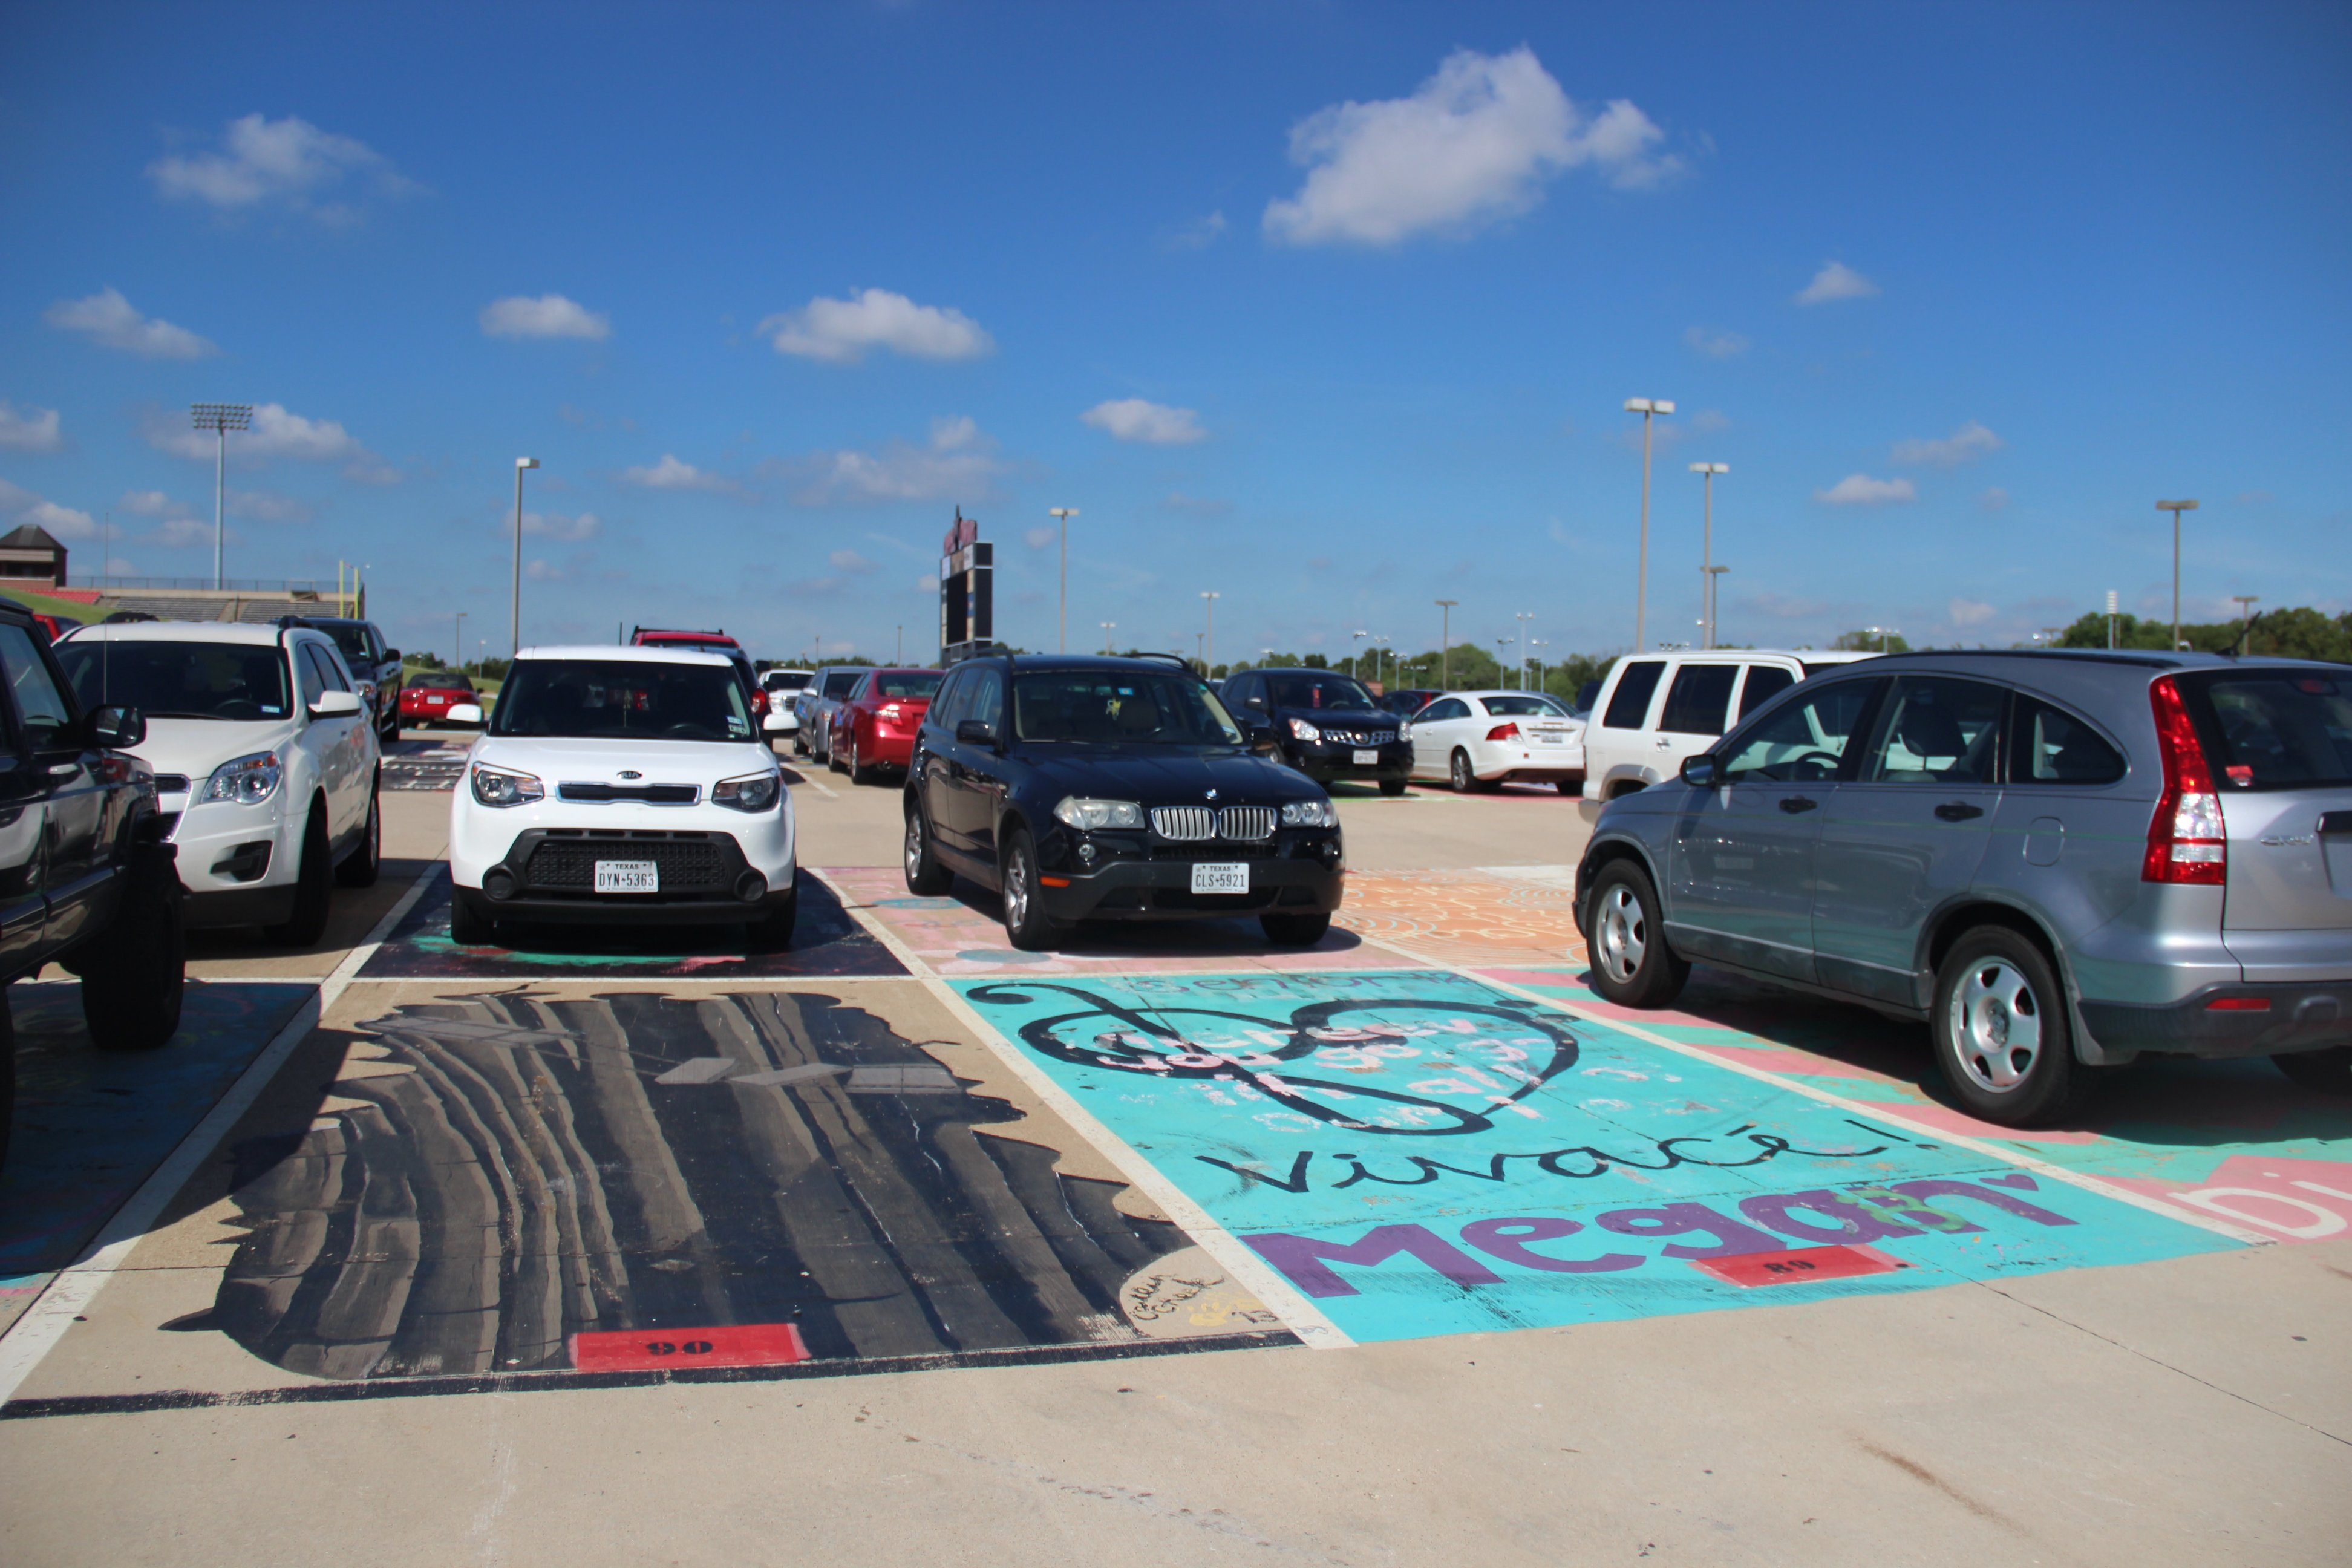 Starting in the 2016-2017 school year, Coppell High School seniors are now required to pay $40 if they want to paint their senior parking spot. Coppell High School seniors are only allowed to paint a 3-foot by 3-foot section of their space.